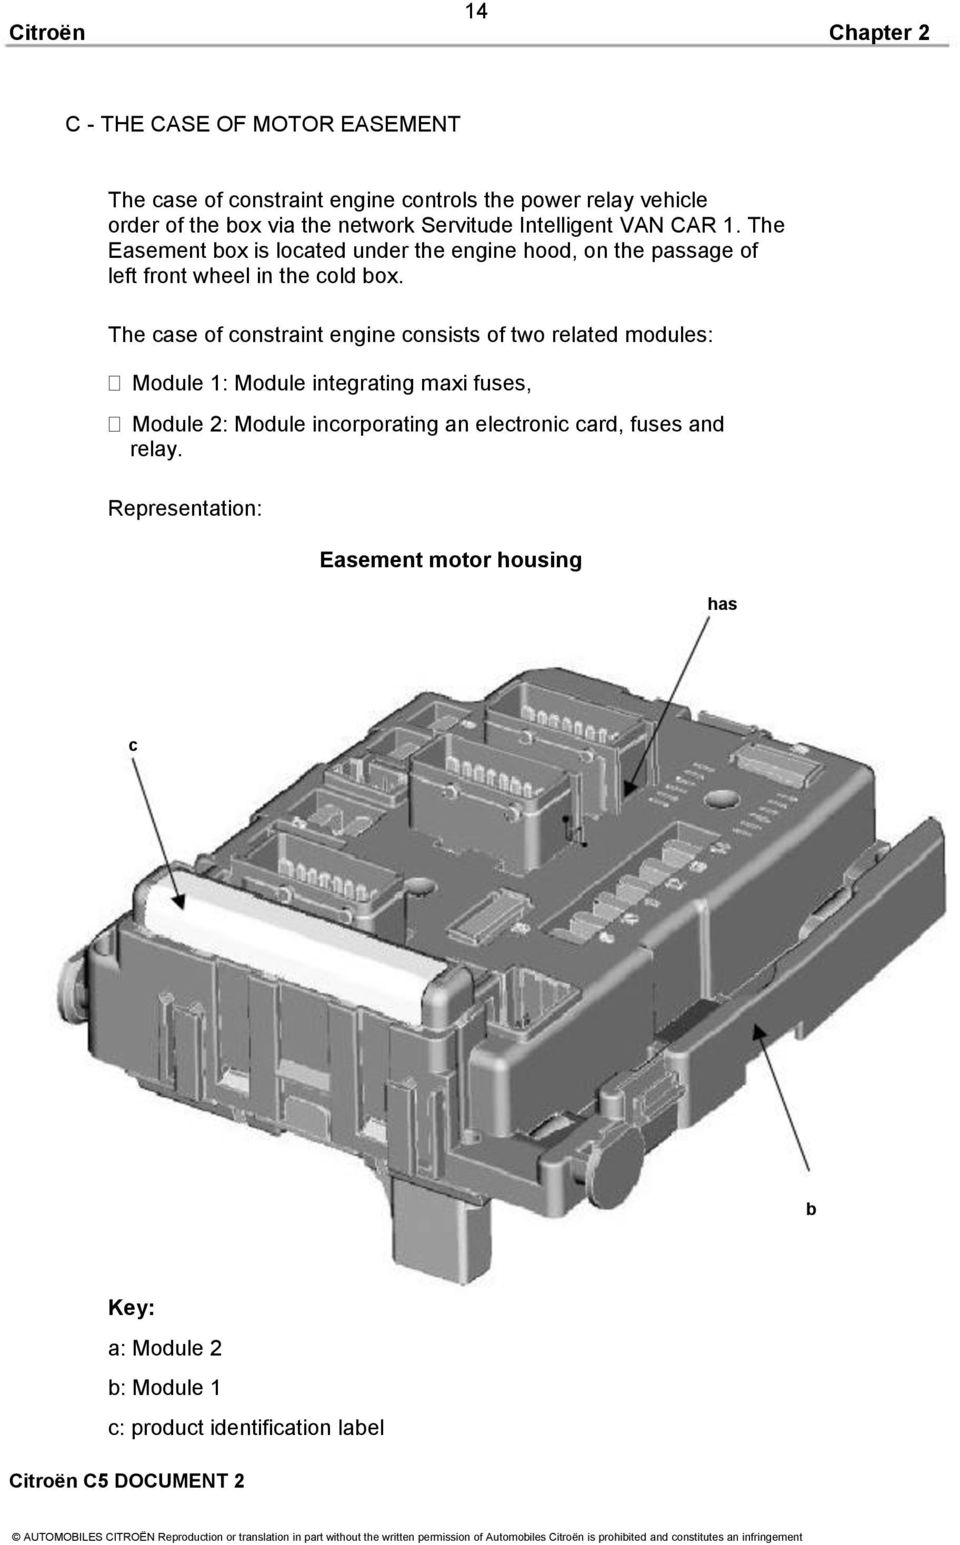 Citroen C5 Document 2 Pdf Airbag Wiring Diagram The Easement Box Is Located Under Engine Hood On Passage Of Left Front